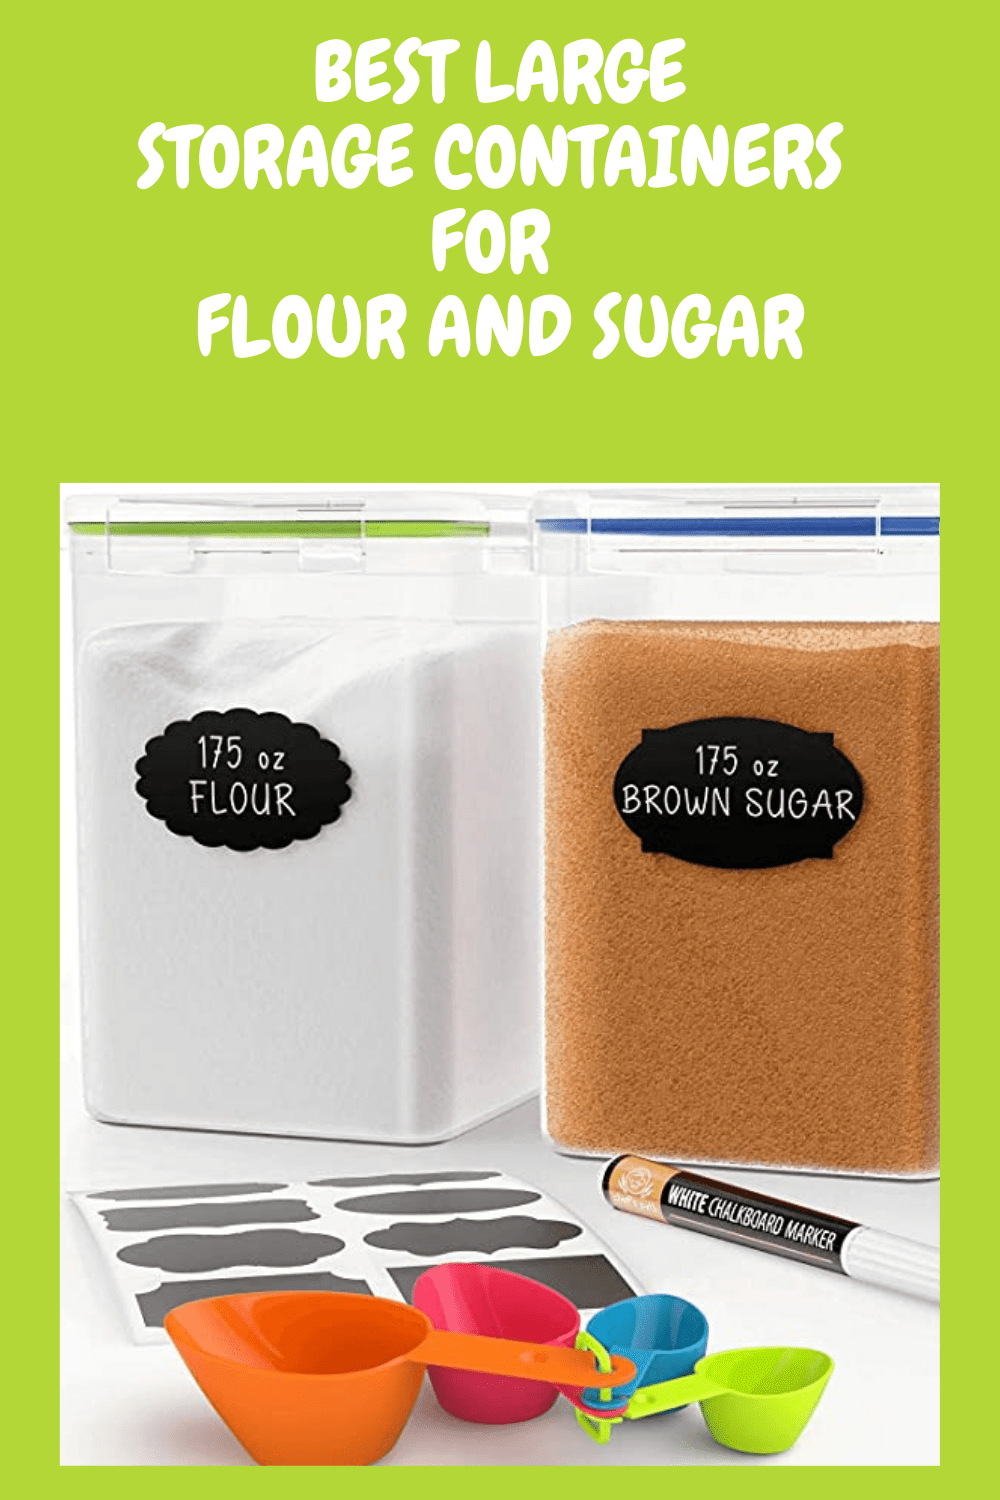 Flour and sugar storage containers